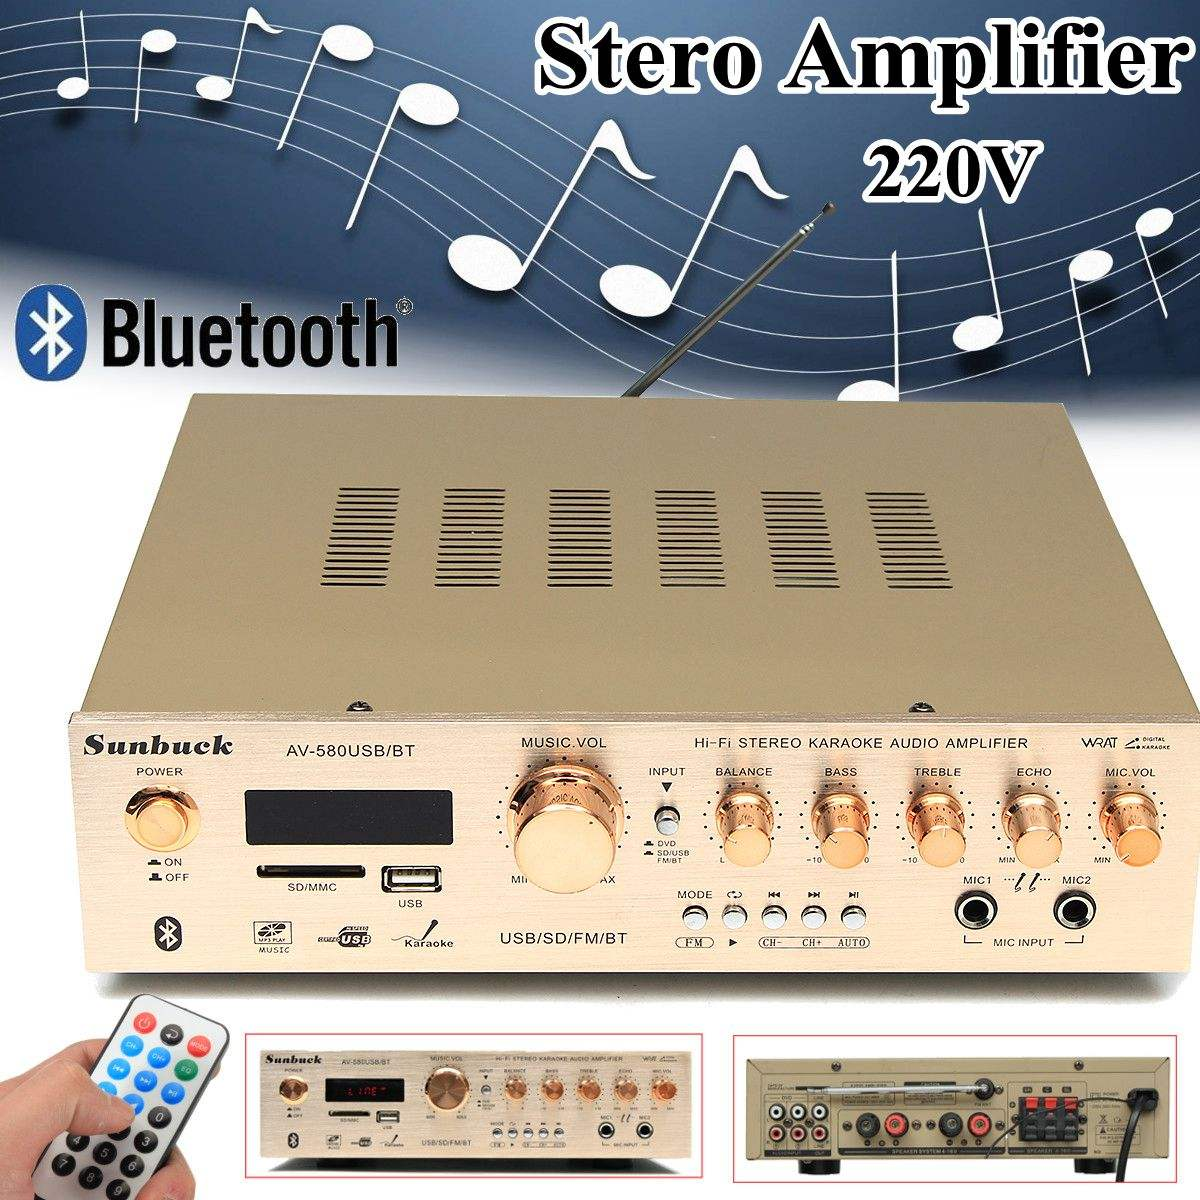 580bt 5ch 220v Stereo Amplifier Sound Mode Audio Music Booster Card Cheap Remote Control Built In Bluetooth For Car Home Multichannel Amplifiers From